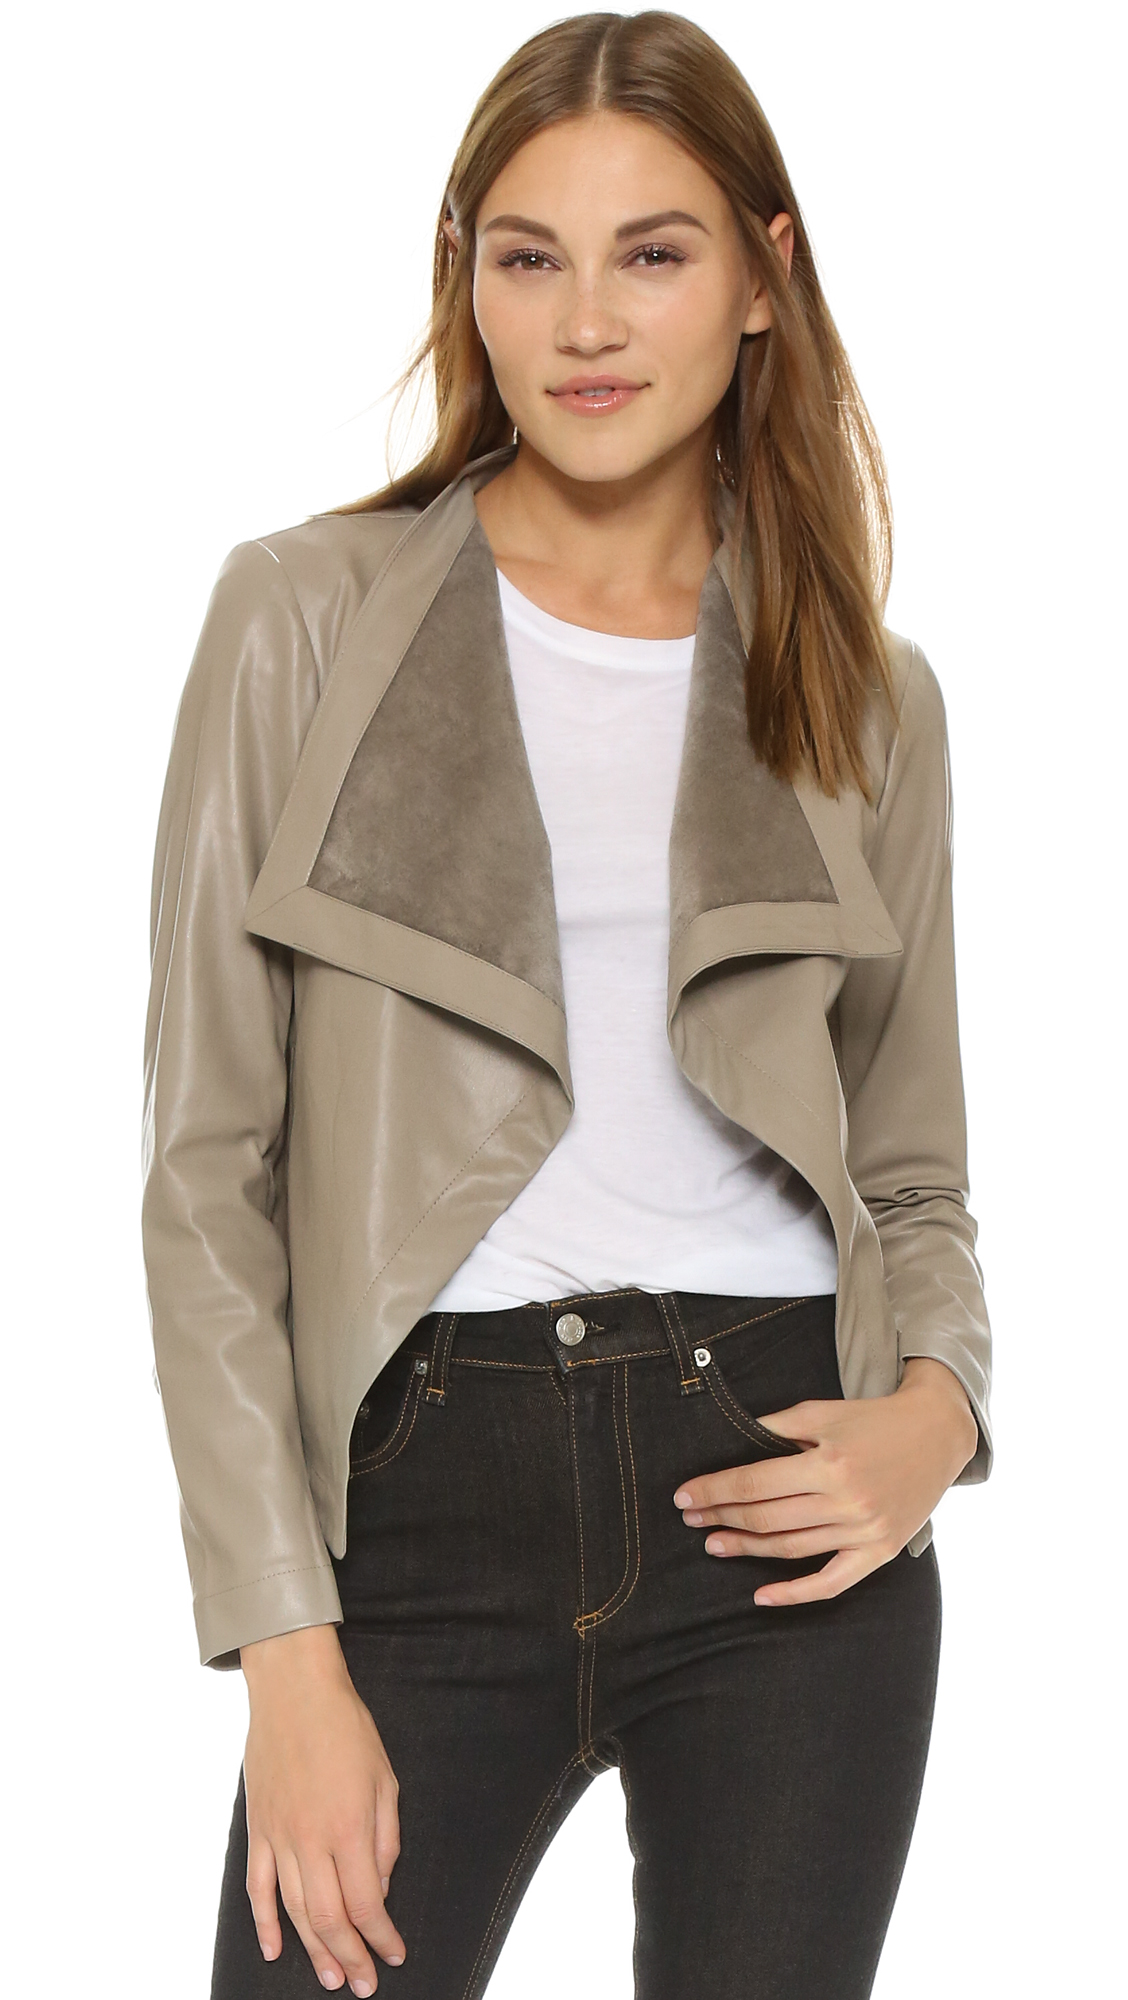 zipper drape romwe zipperfor with moto belted black drapes leather faux jacket p women cat